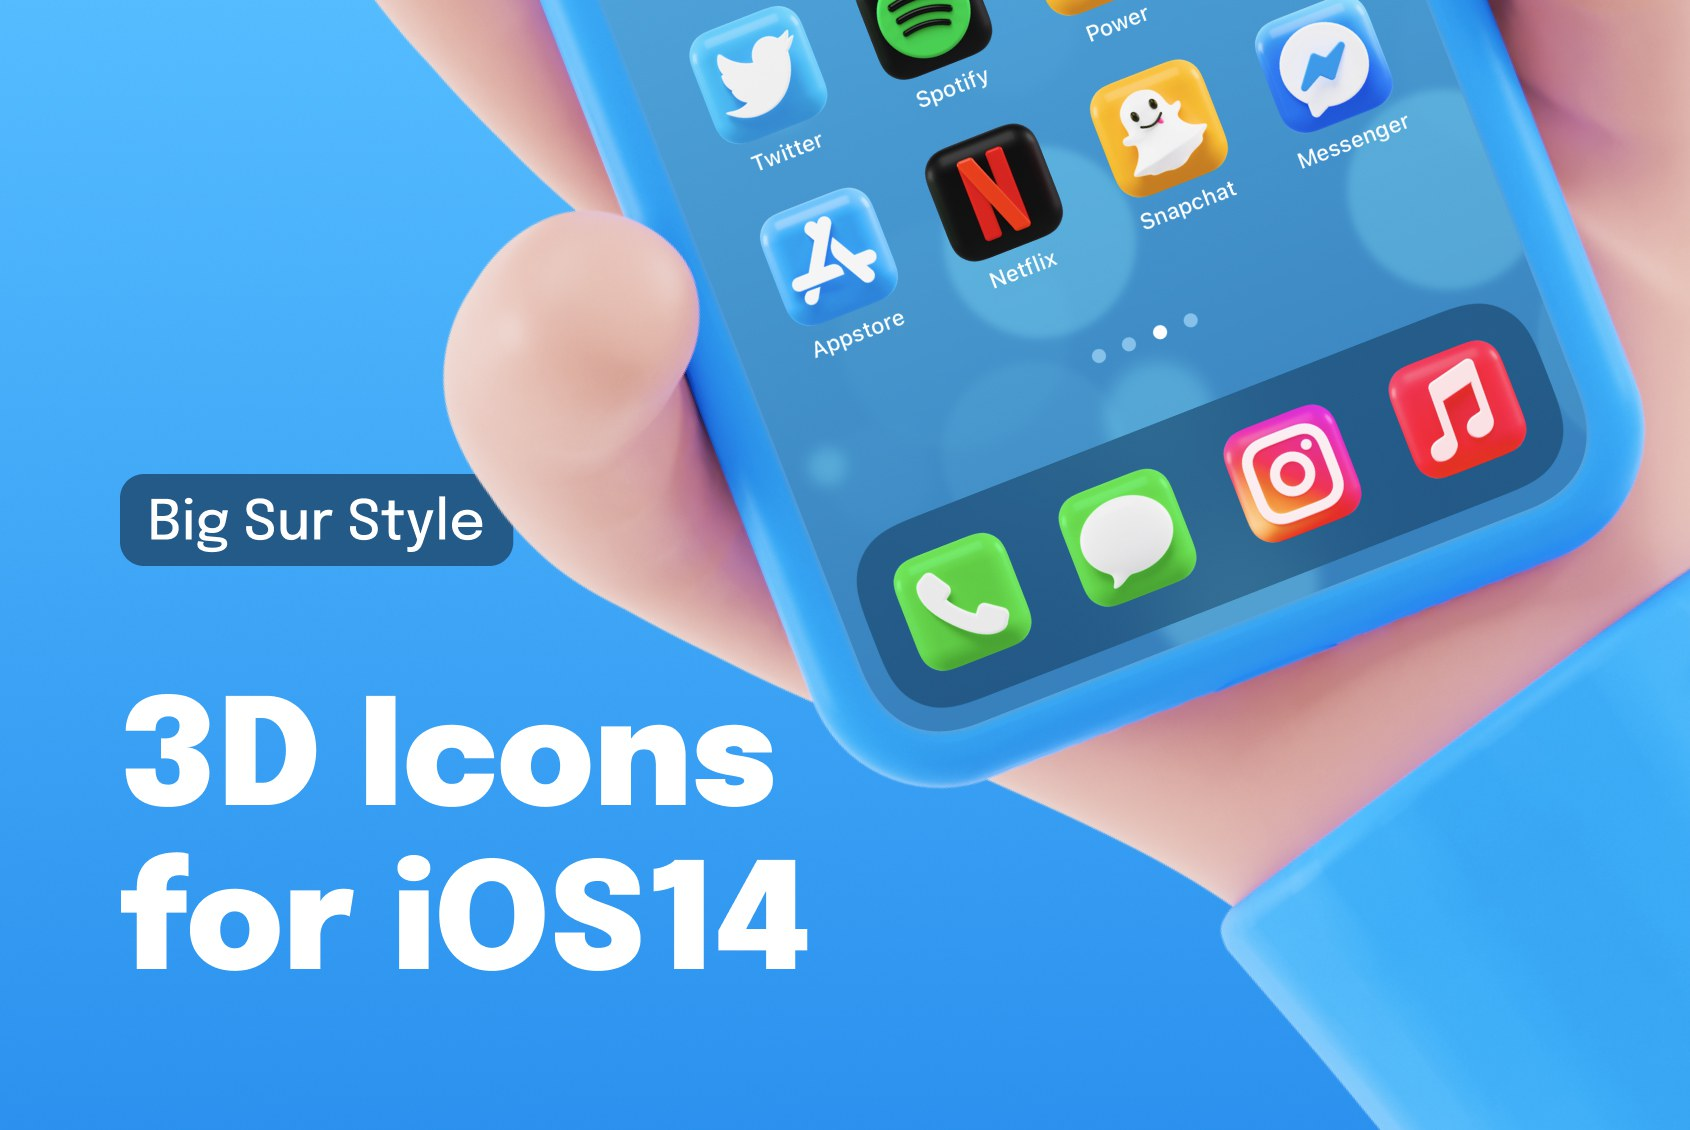 Big Sur Styled Icons for iOS 14